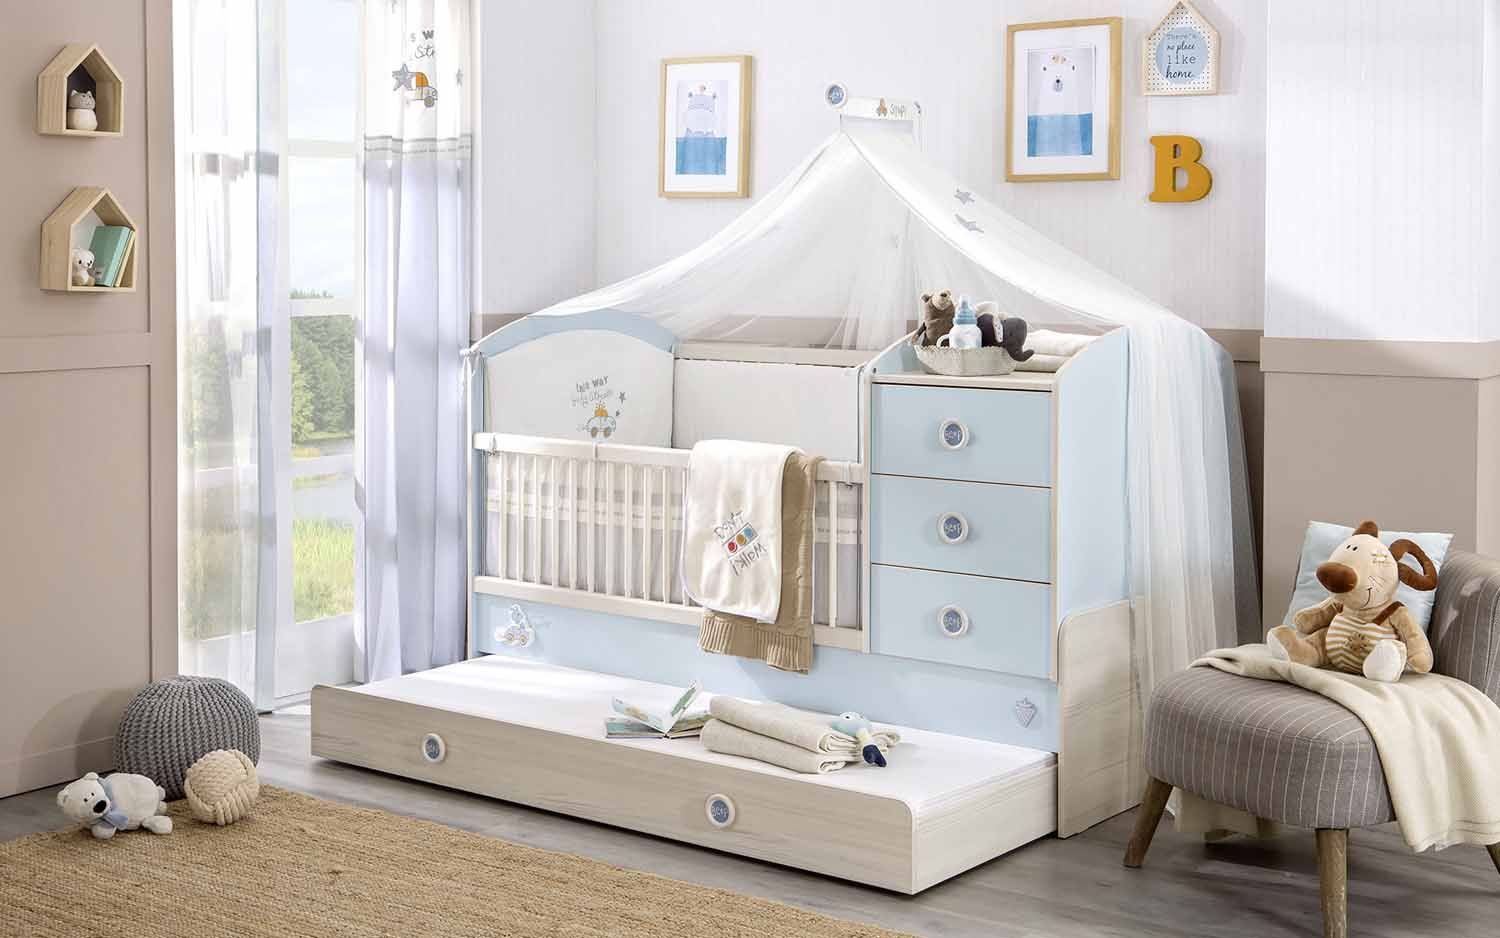 Fairy Cot bed is a traditional princess style cot bed with elegant